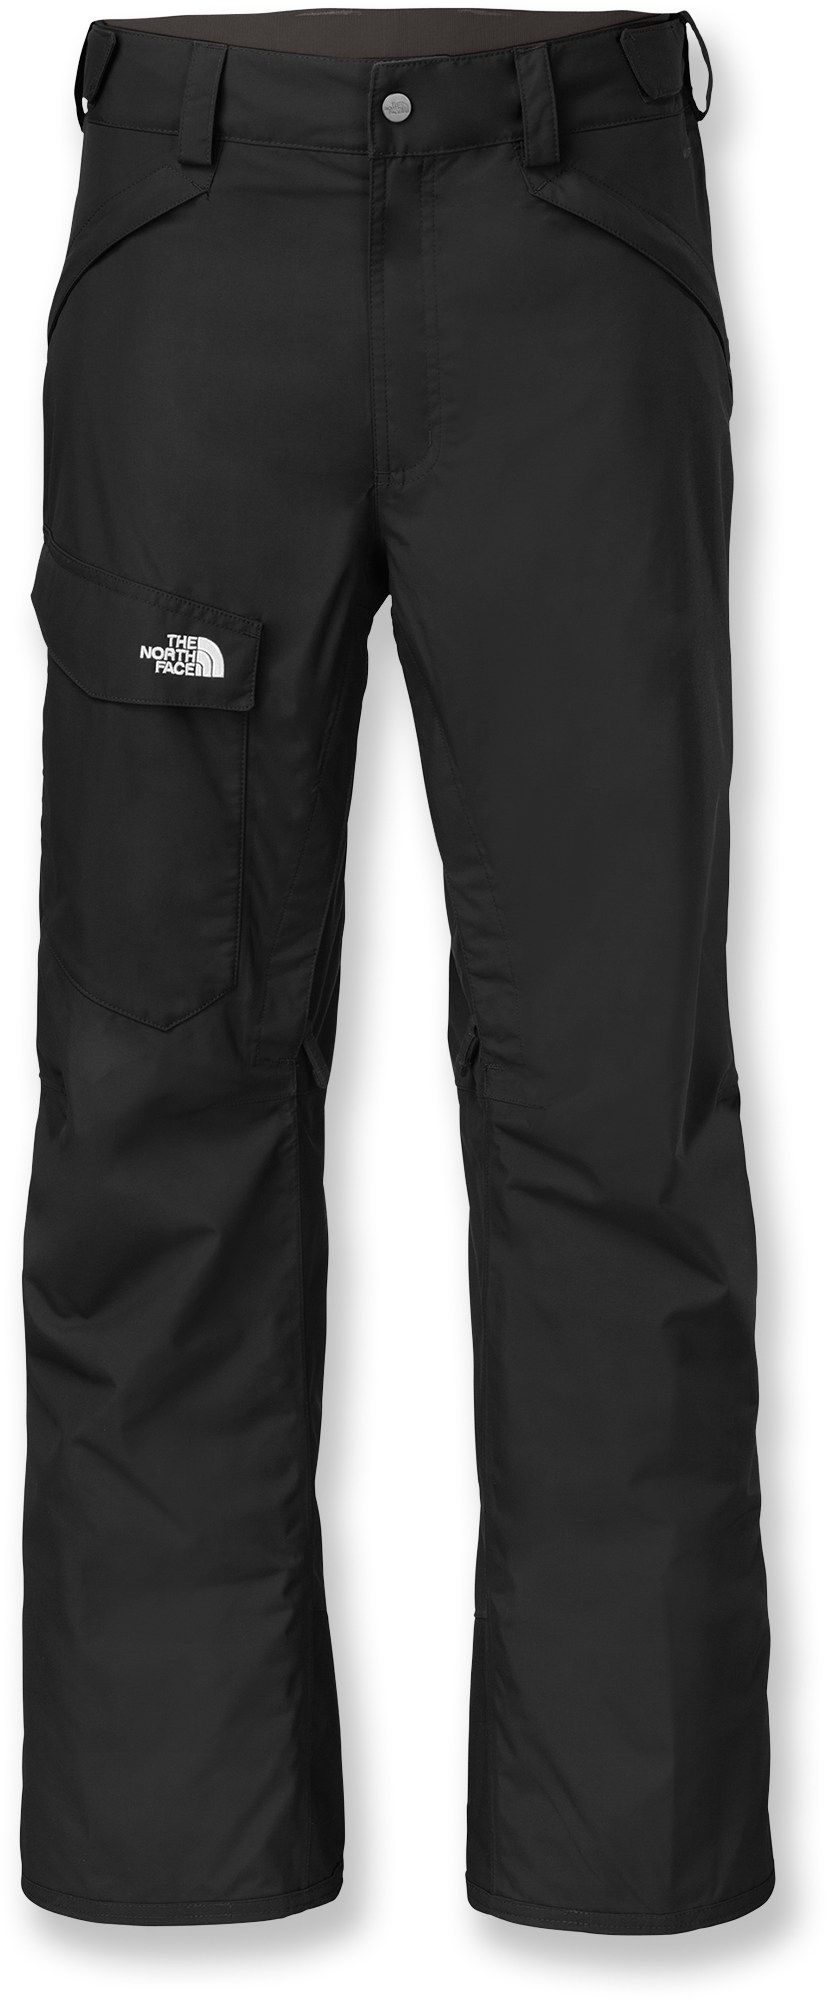 40ad3f1216aa The North Face Male Freedom Insulated Snow Pants - Men s Long